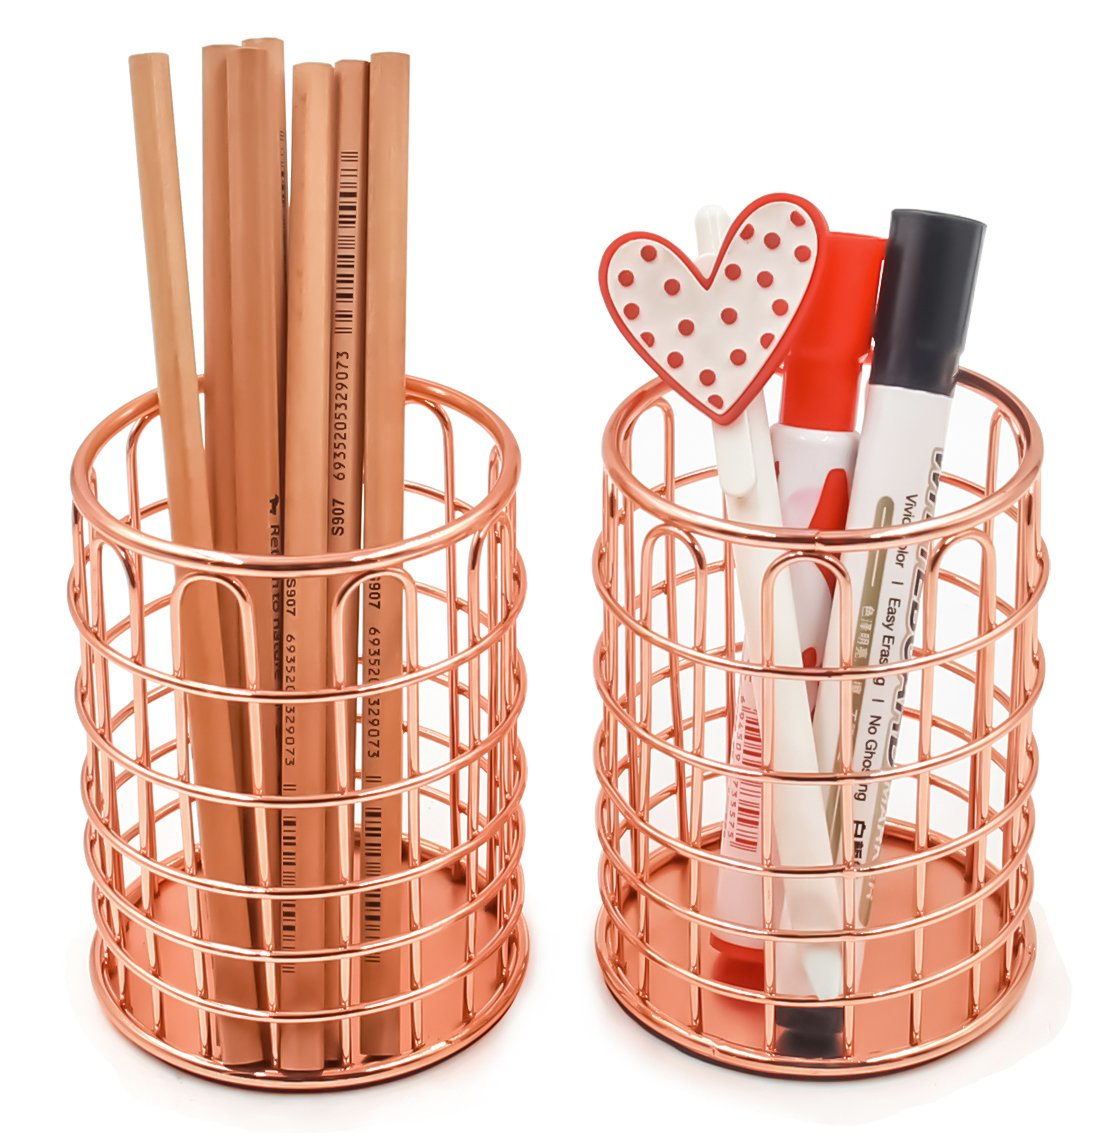 Superbpag Wire Metal Desktop Pencil Holder, Set of 2, Rose Gold by Superbpag (Image #1)